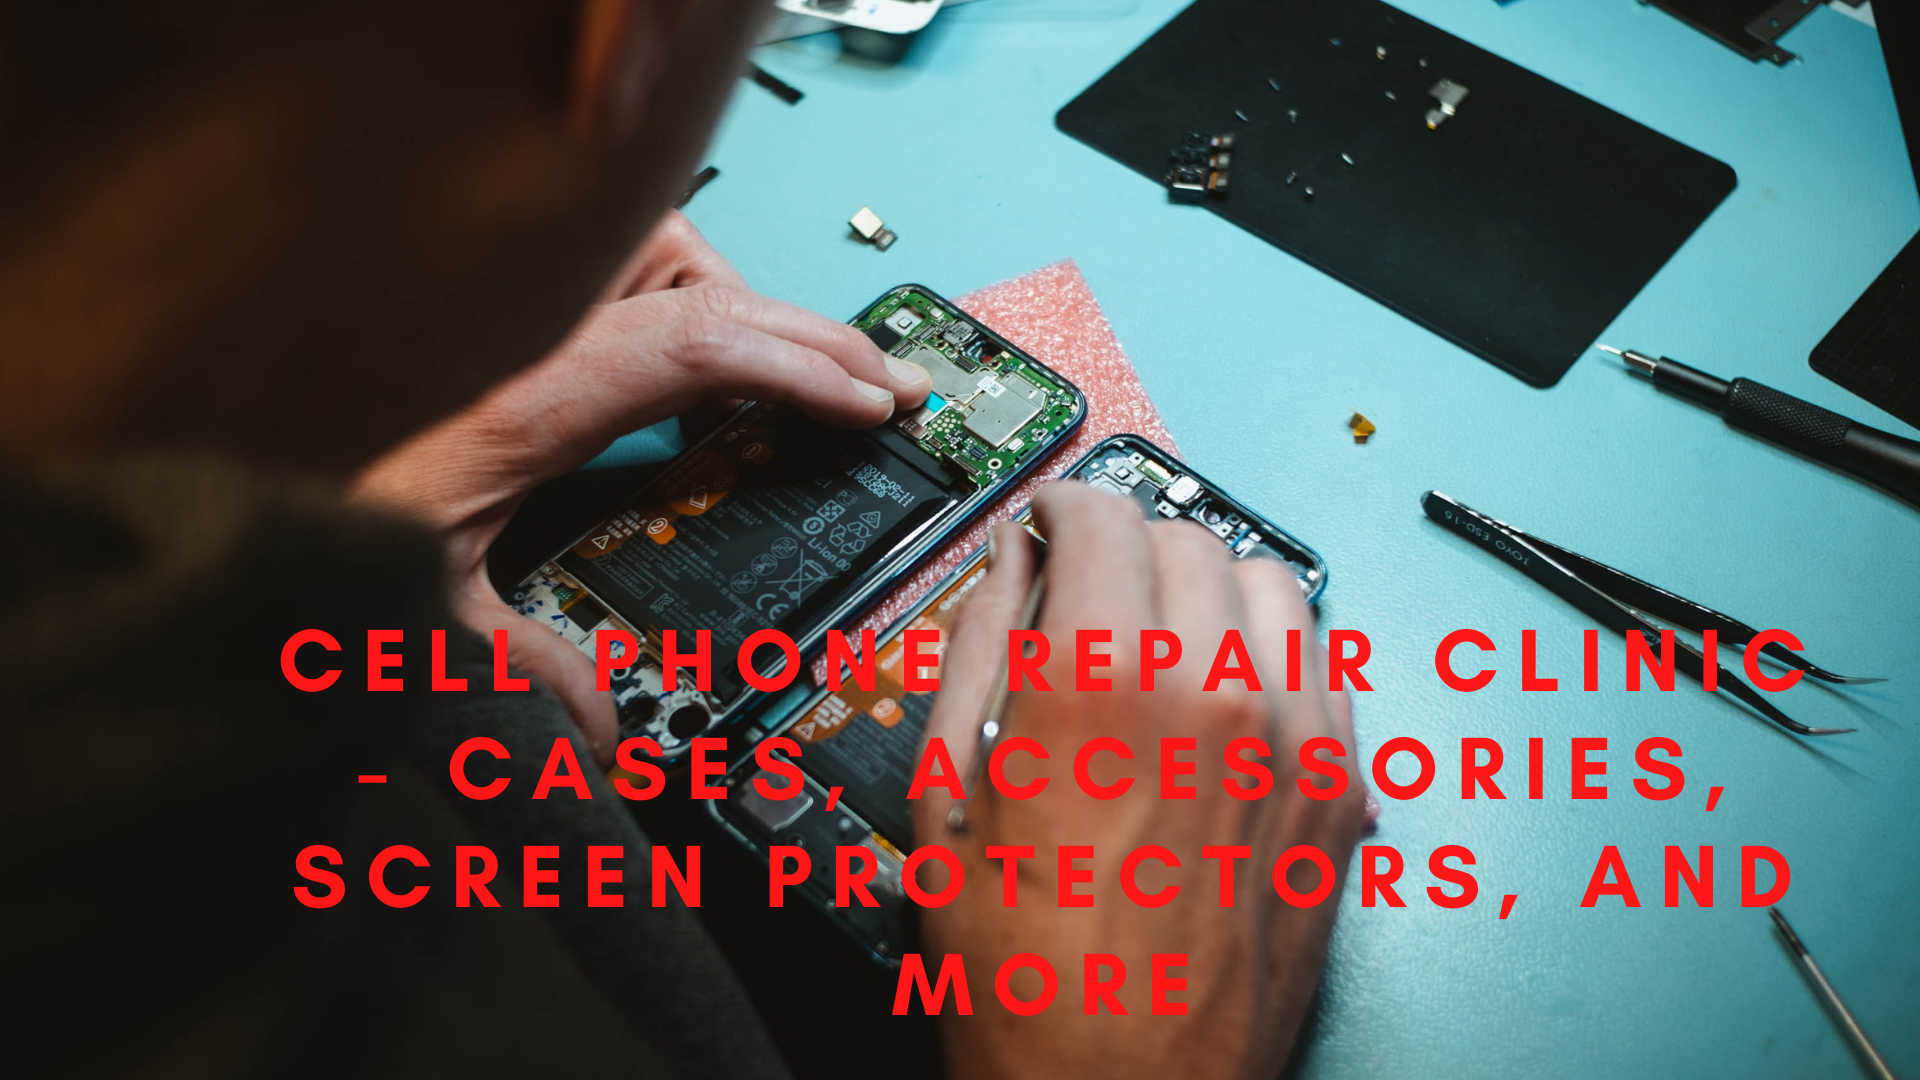 Cell Phone Repair Clinic – Cases, Accessories, Screen Protectors, and more